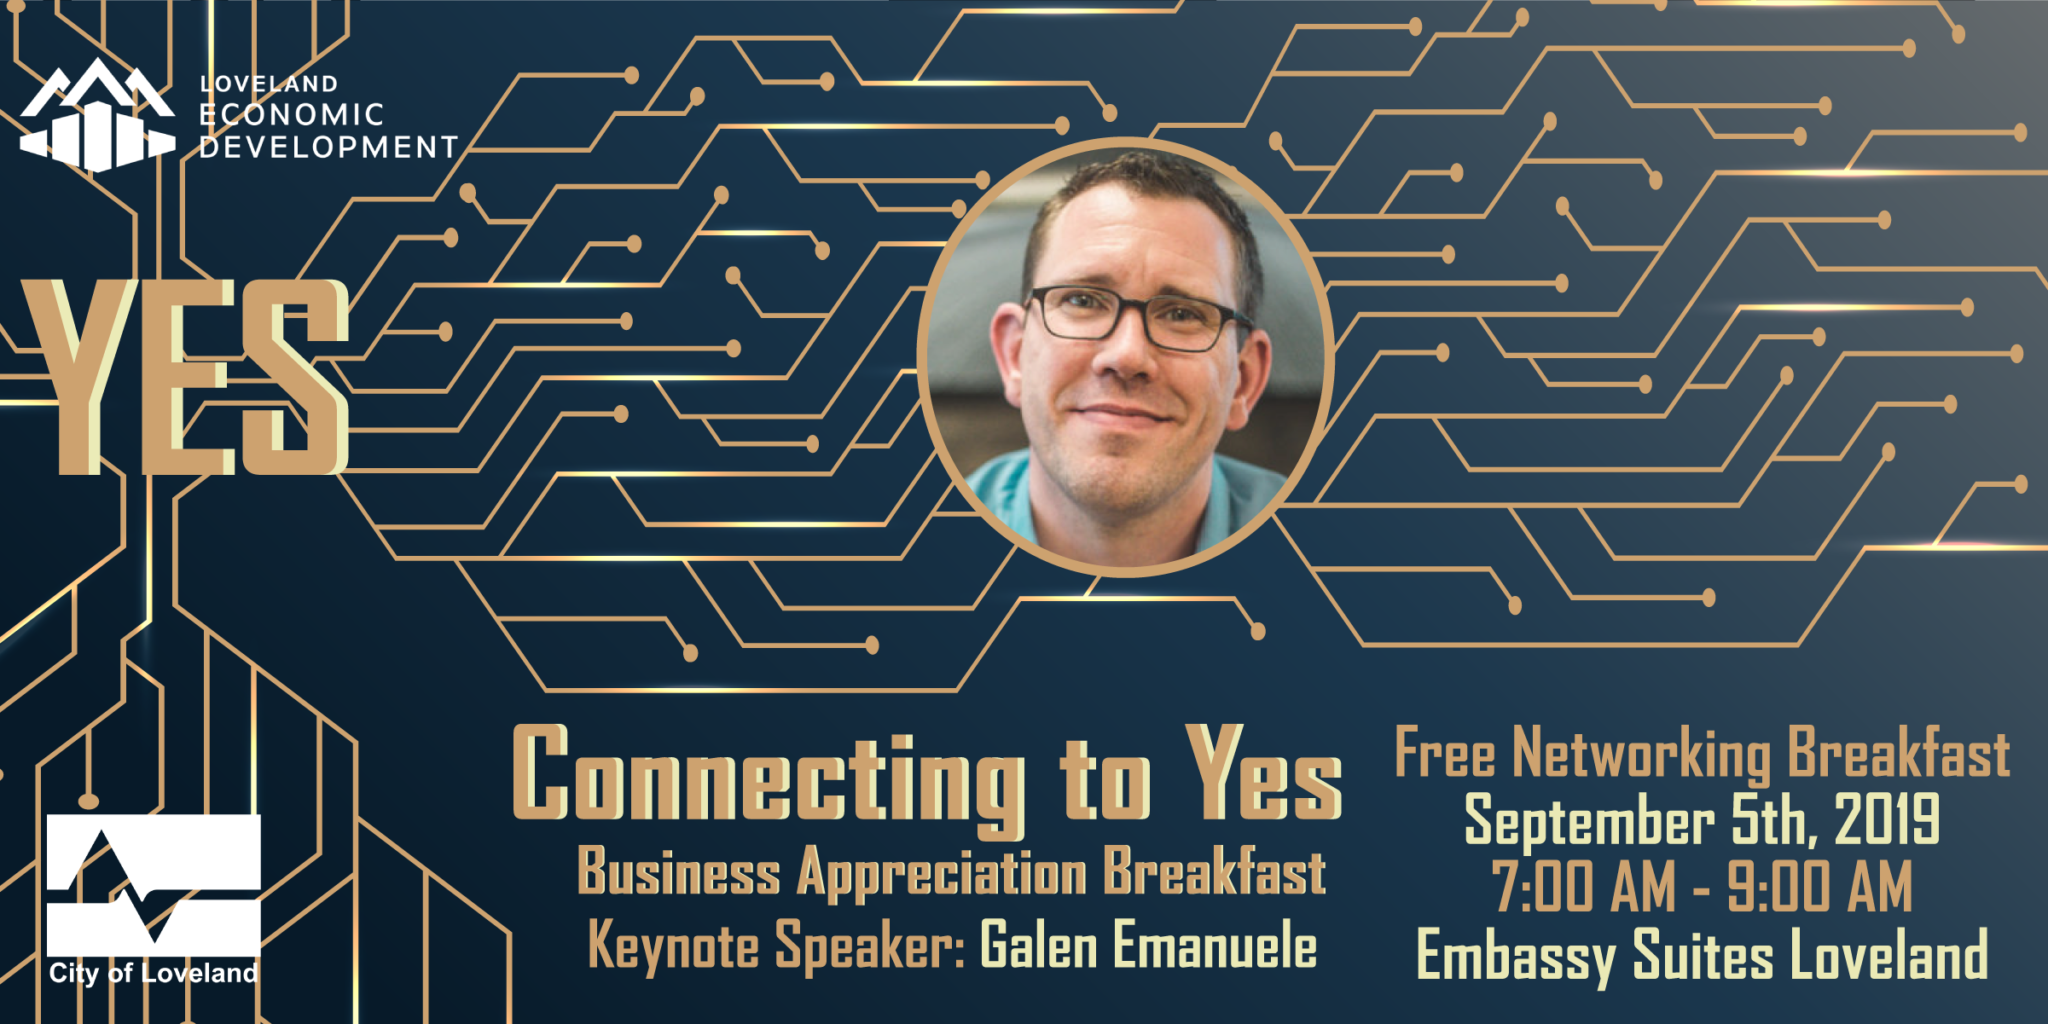 2019 City of Loveland Business Appreciation Breakfast: Connecting to YES!